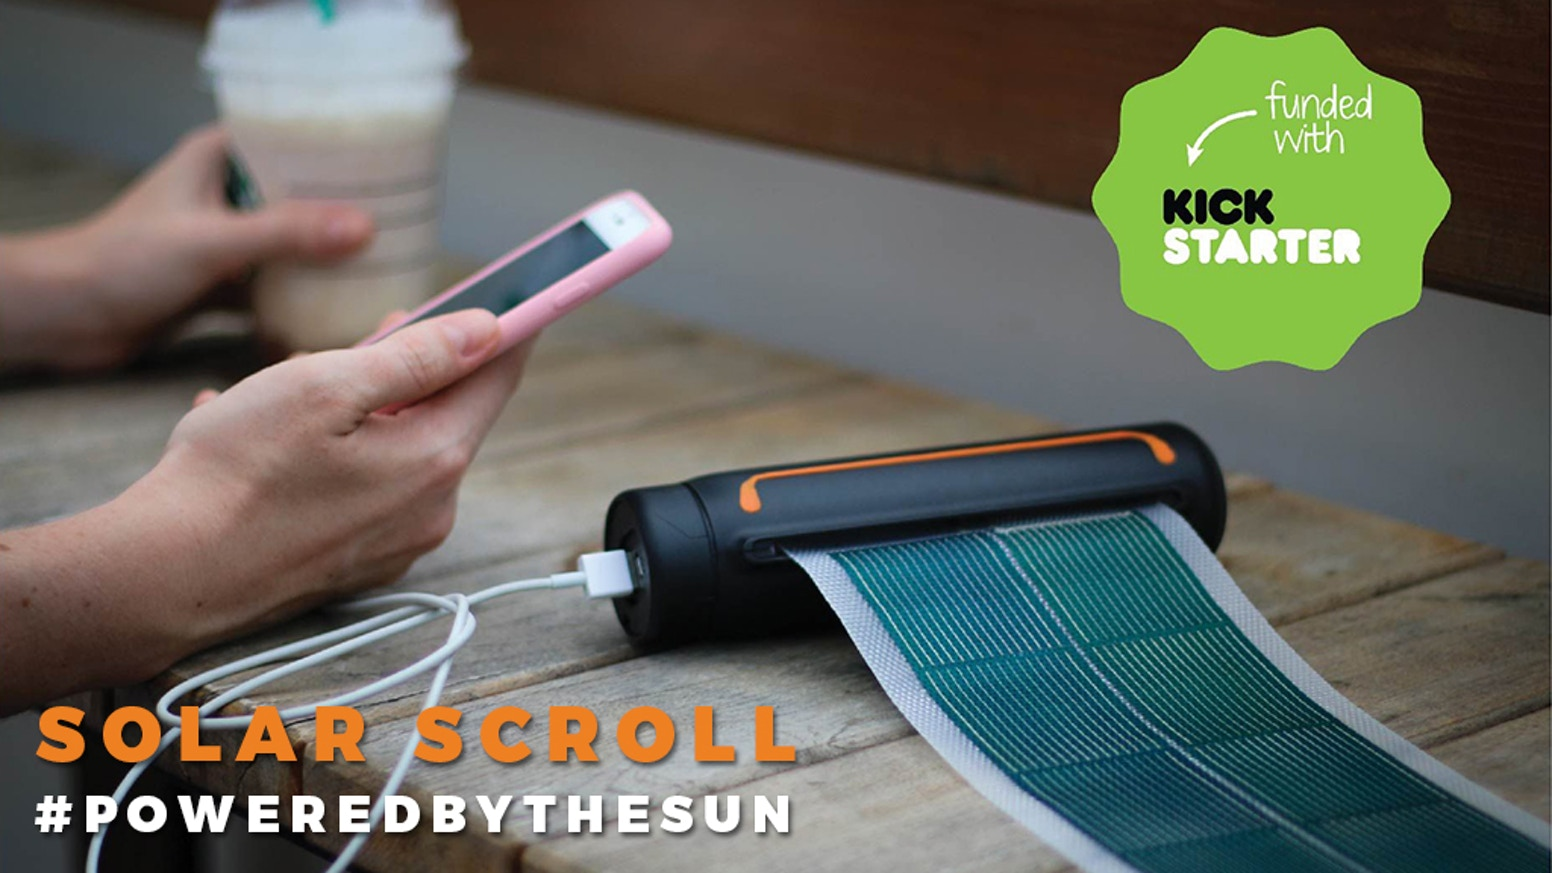 Featuring a military grade rollable solar panel with an  integrated battery to charge your devices on the go.